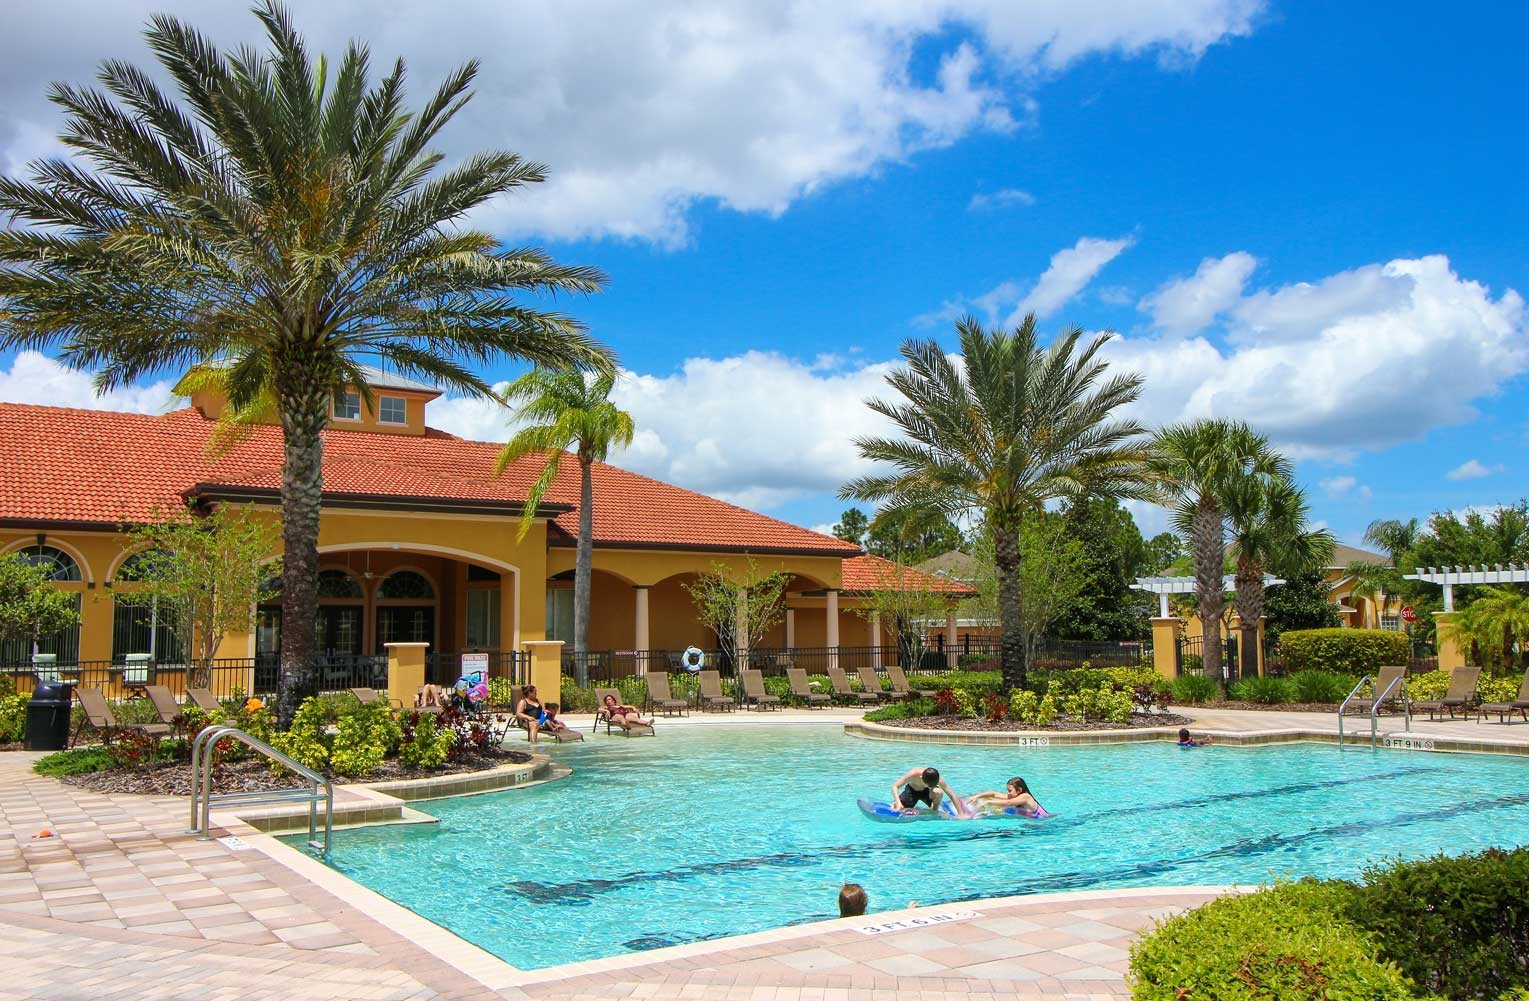 Watersong Resort/DR5929-145246